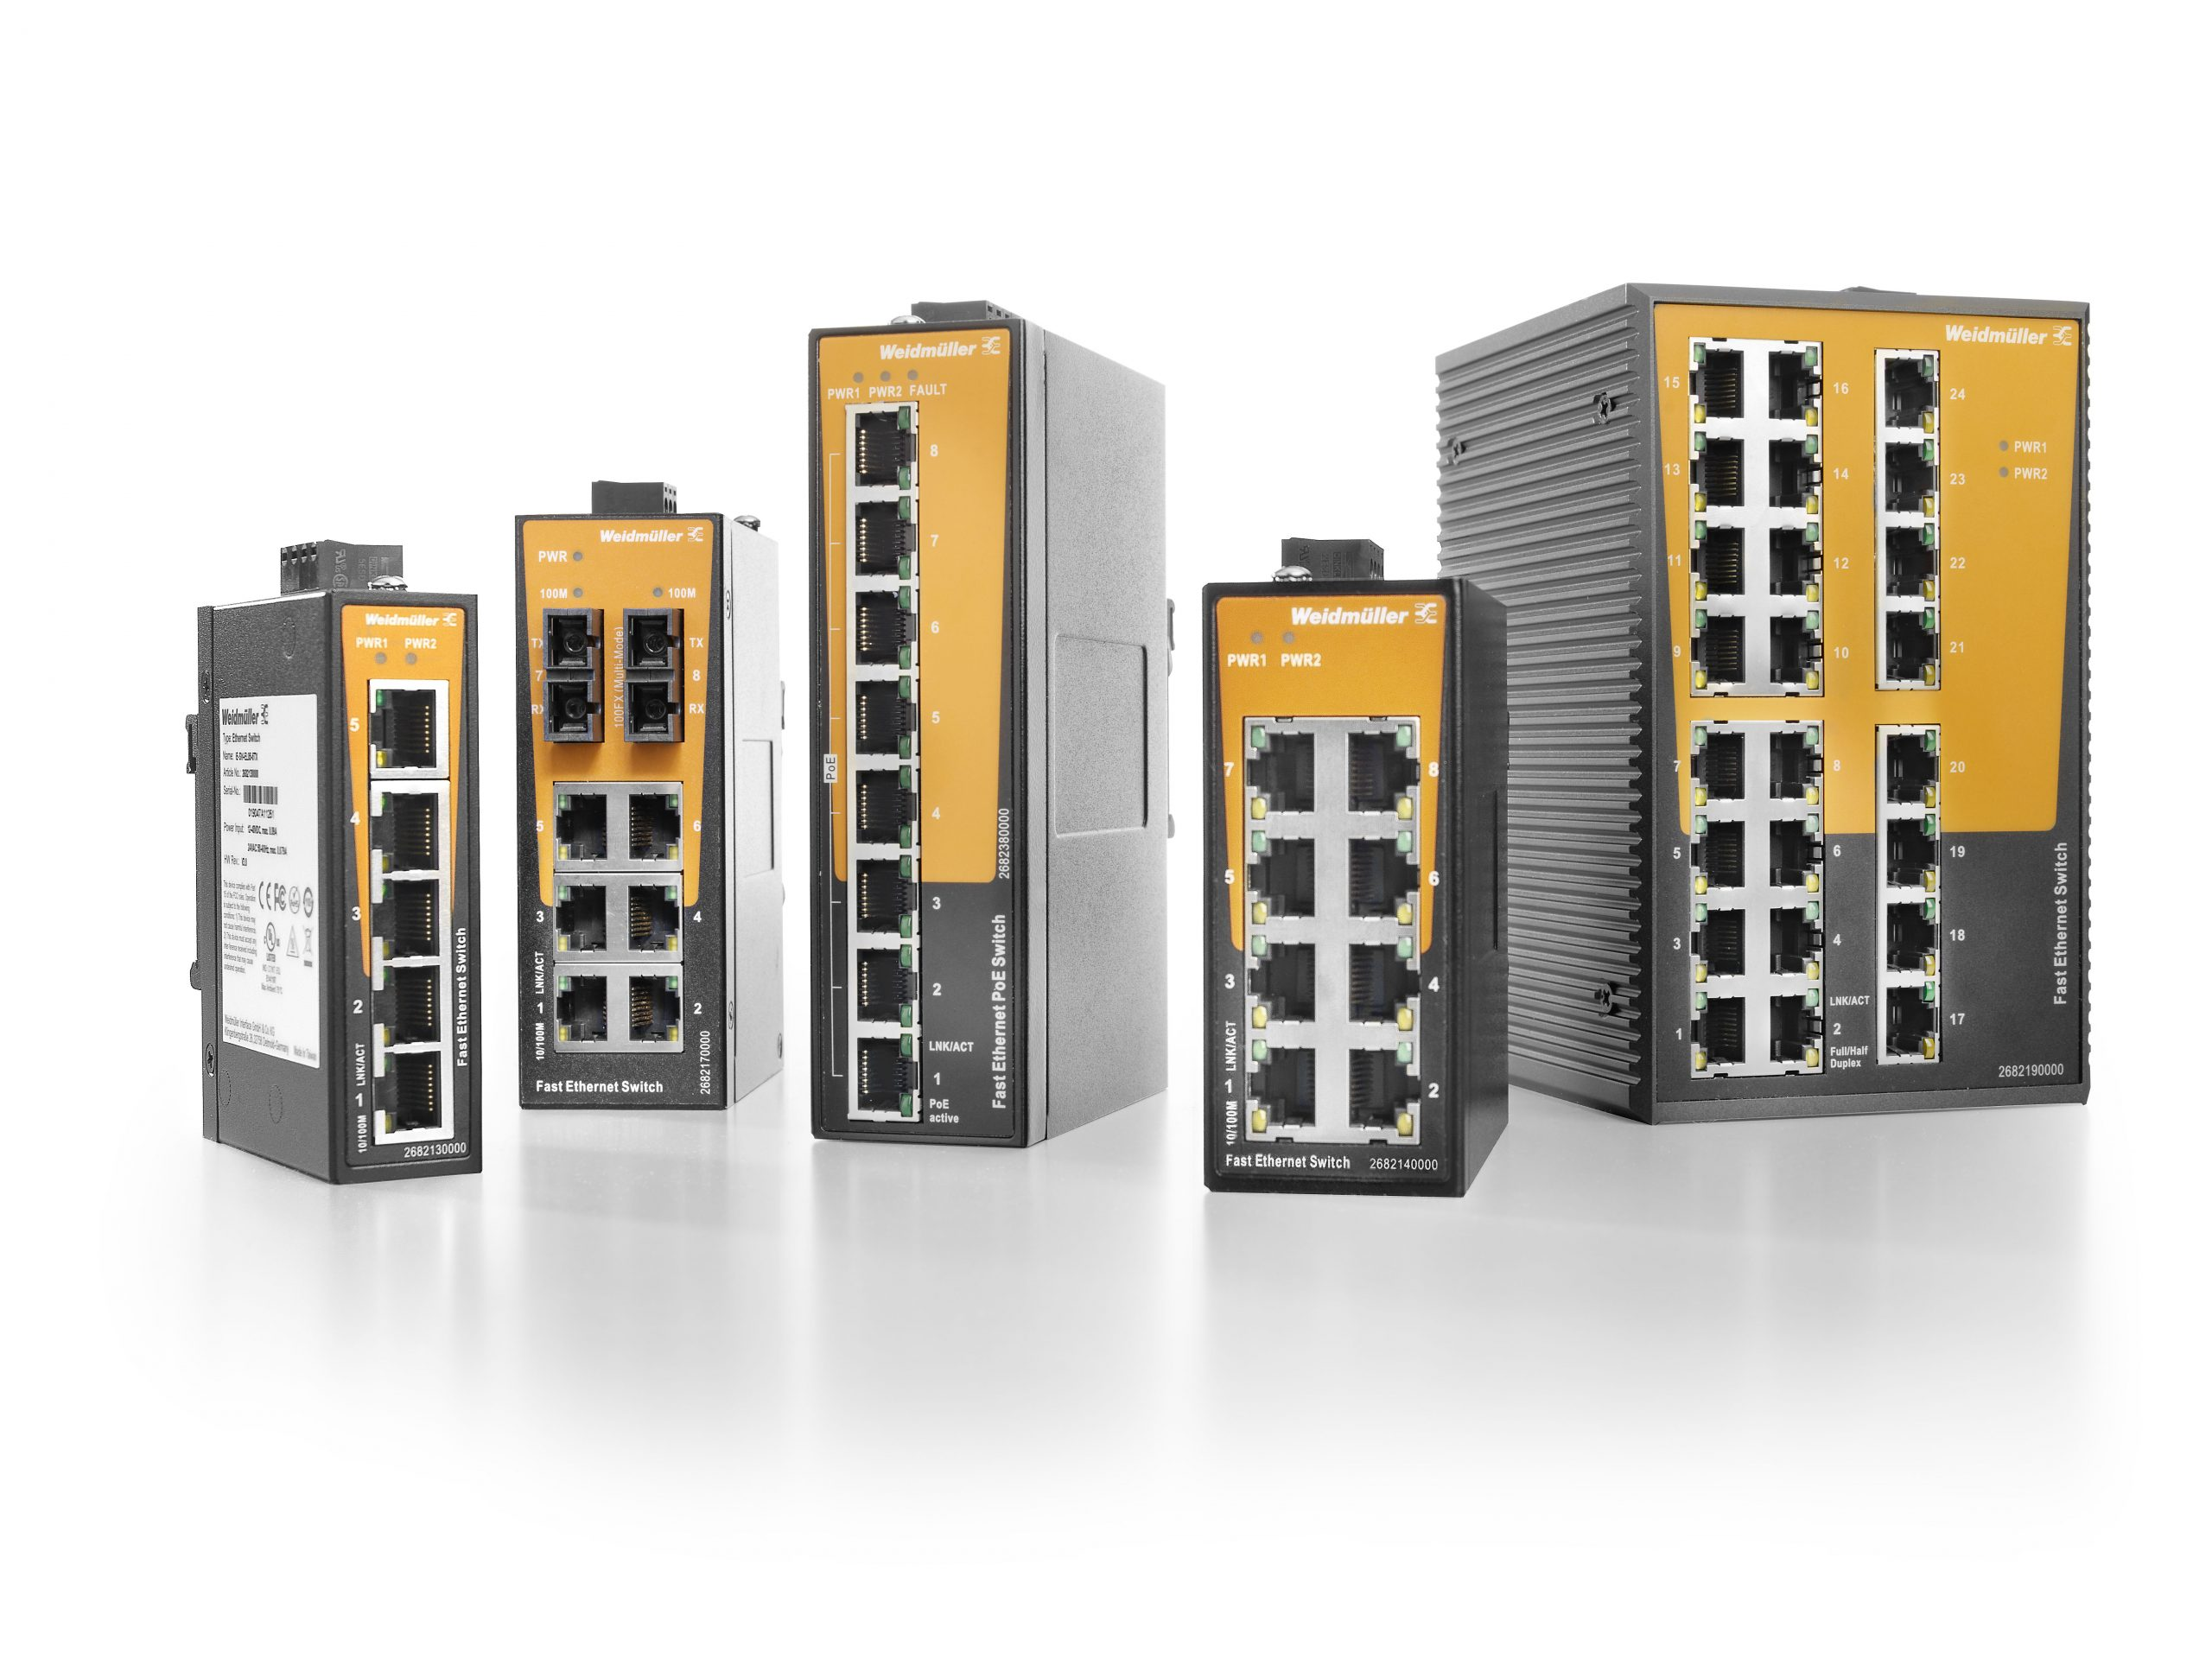 The new Ethernet switches from Weidmüller have been specifically developed for small industrial networks – for the secure and reliable communication between Ethernet-based machines and systems as well as allowing for the connection of Ethernet devices to a higher-level network. (Picture: Weidmüller)